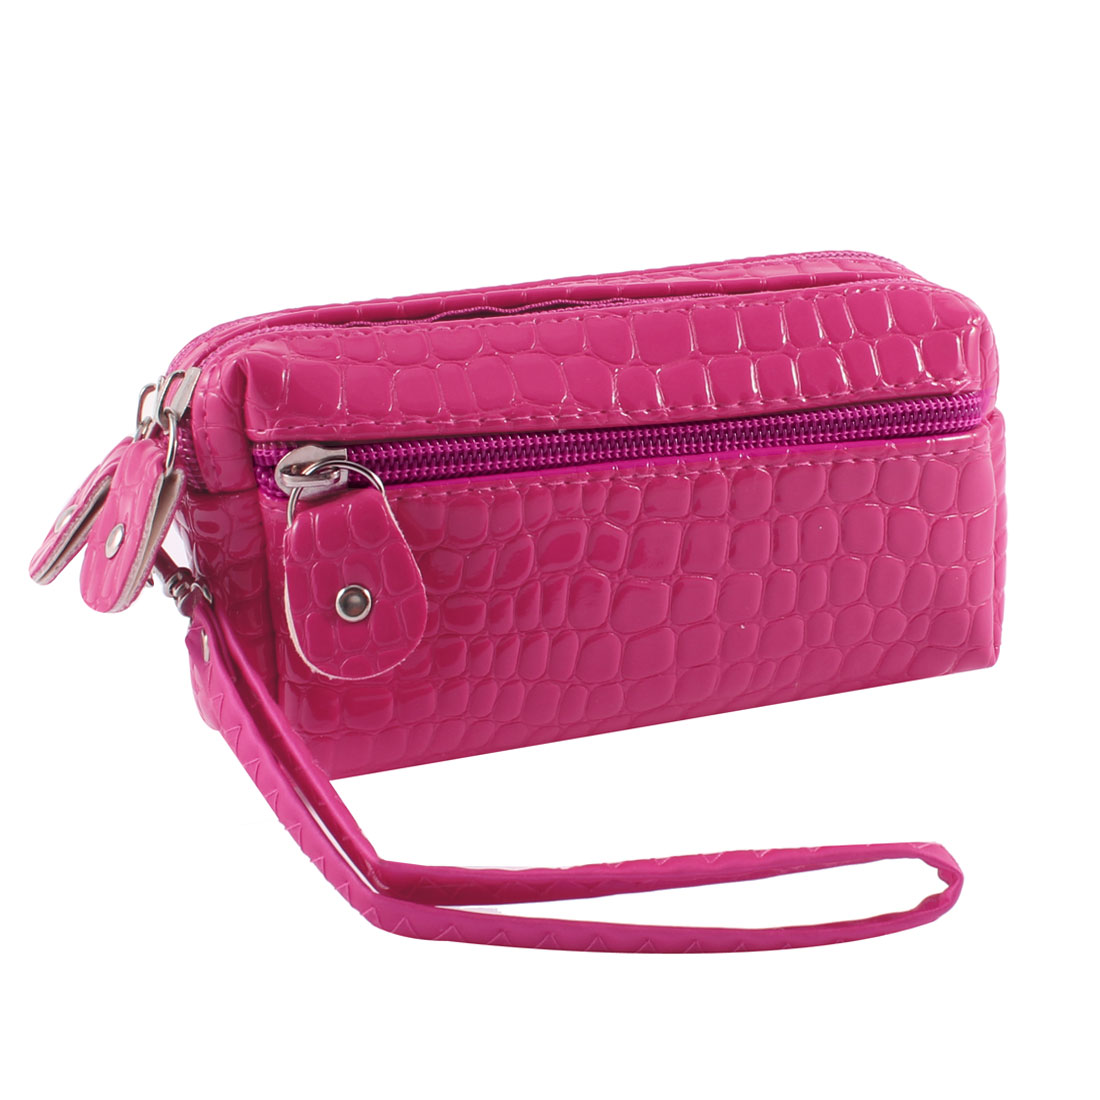 Woman Fuchsia Crocodile Pattern 3 Zipper Closure Handbag Purse w Strap